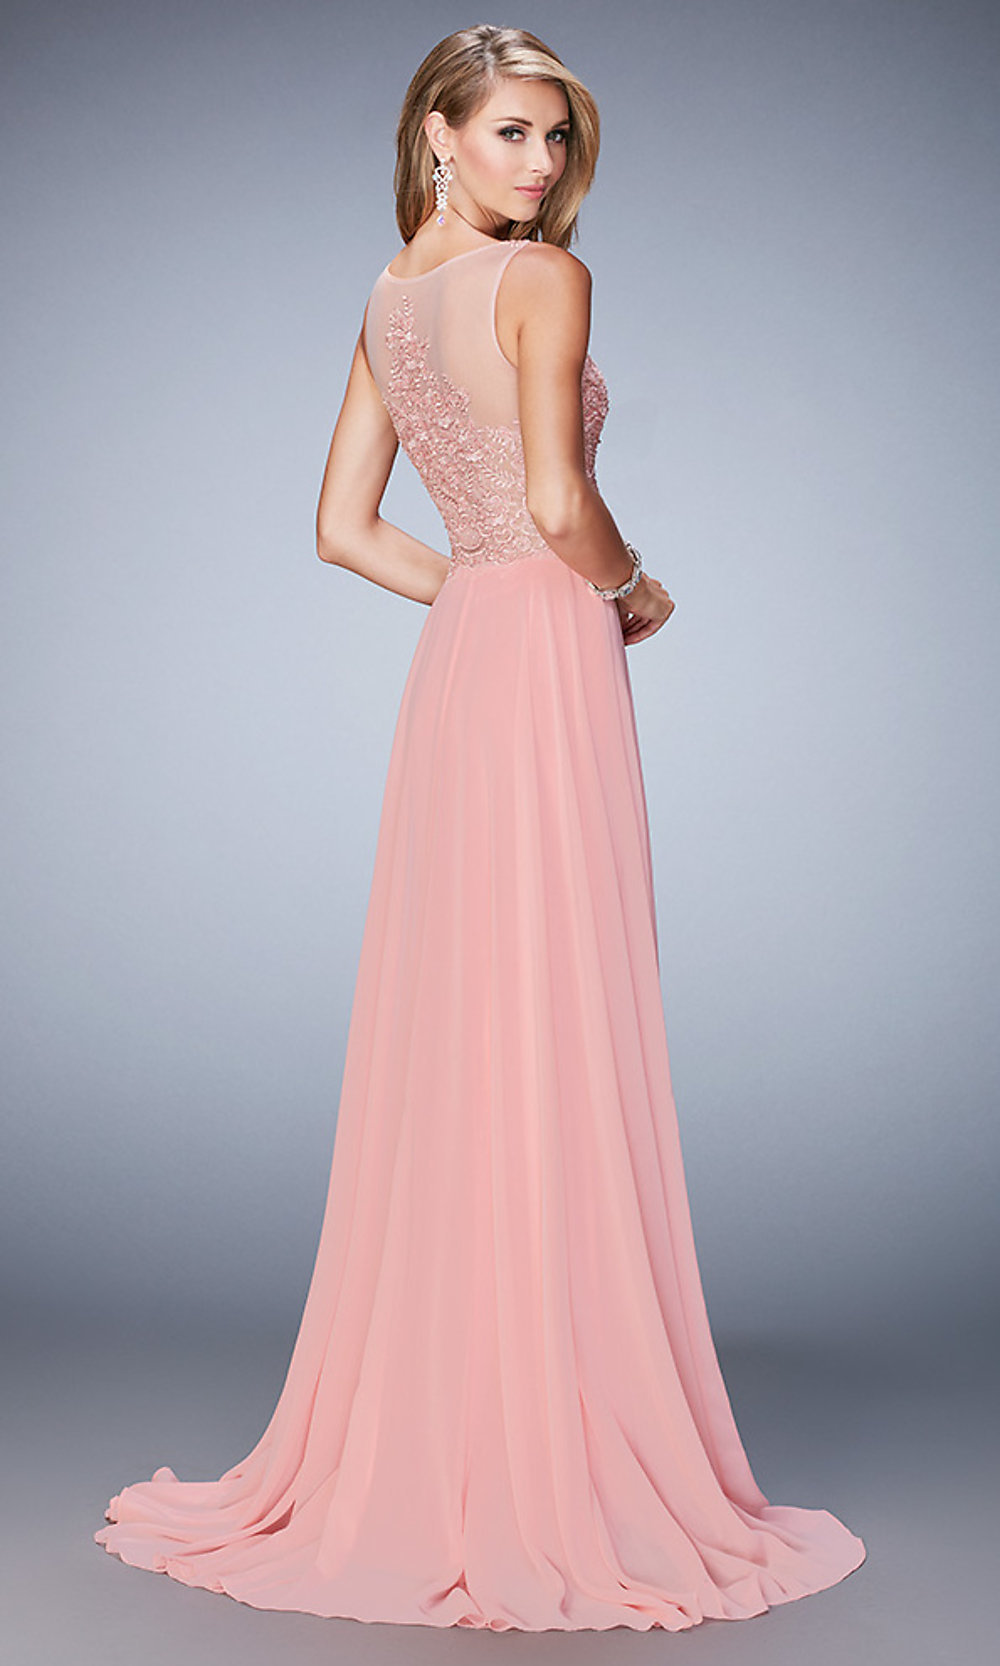 Outstanding Prom Dresses Marietta Ga Mold - Colorful Wedding Dress ...